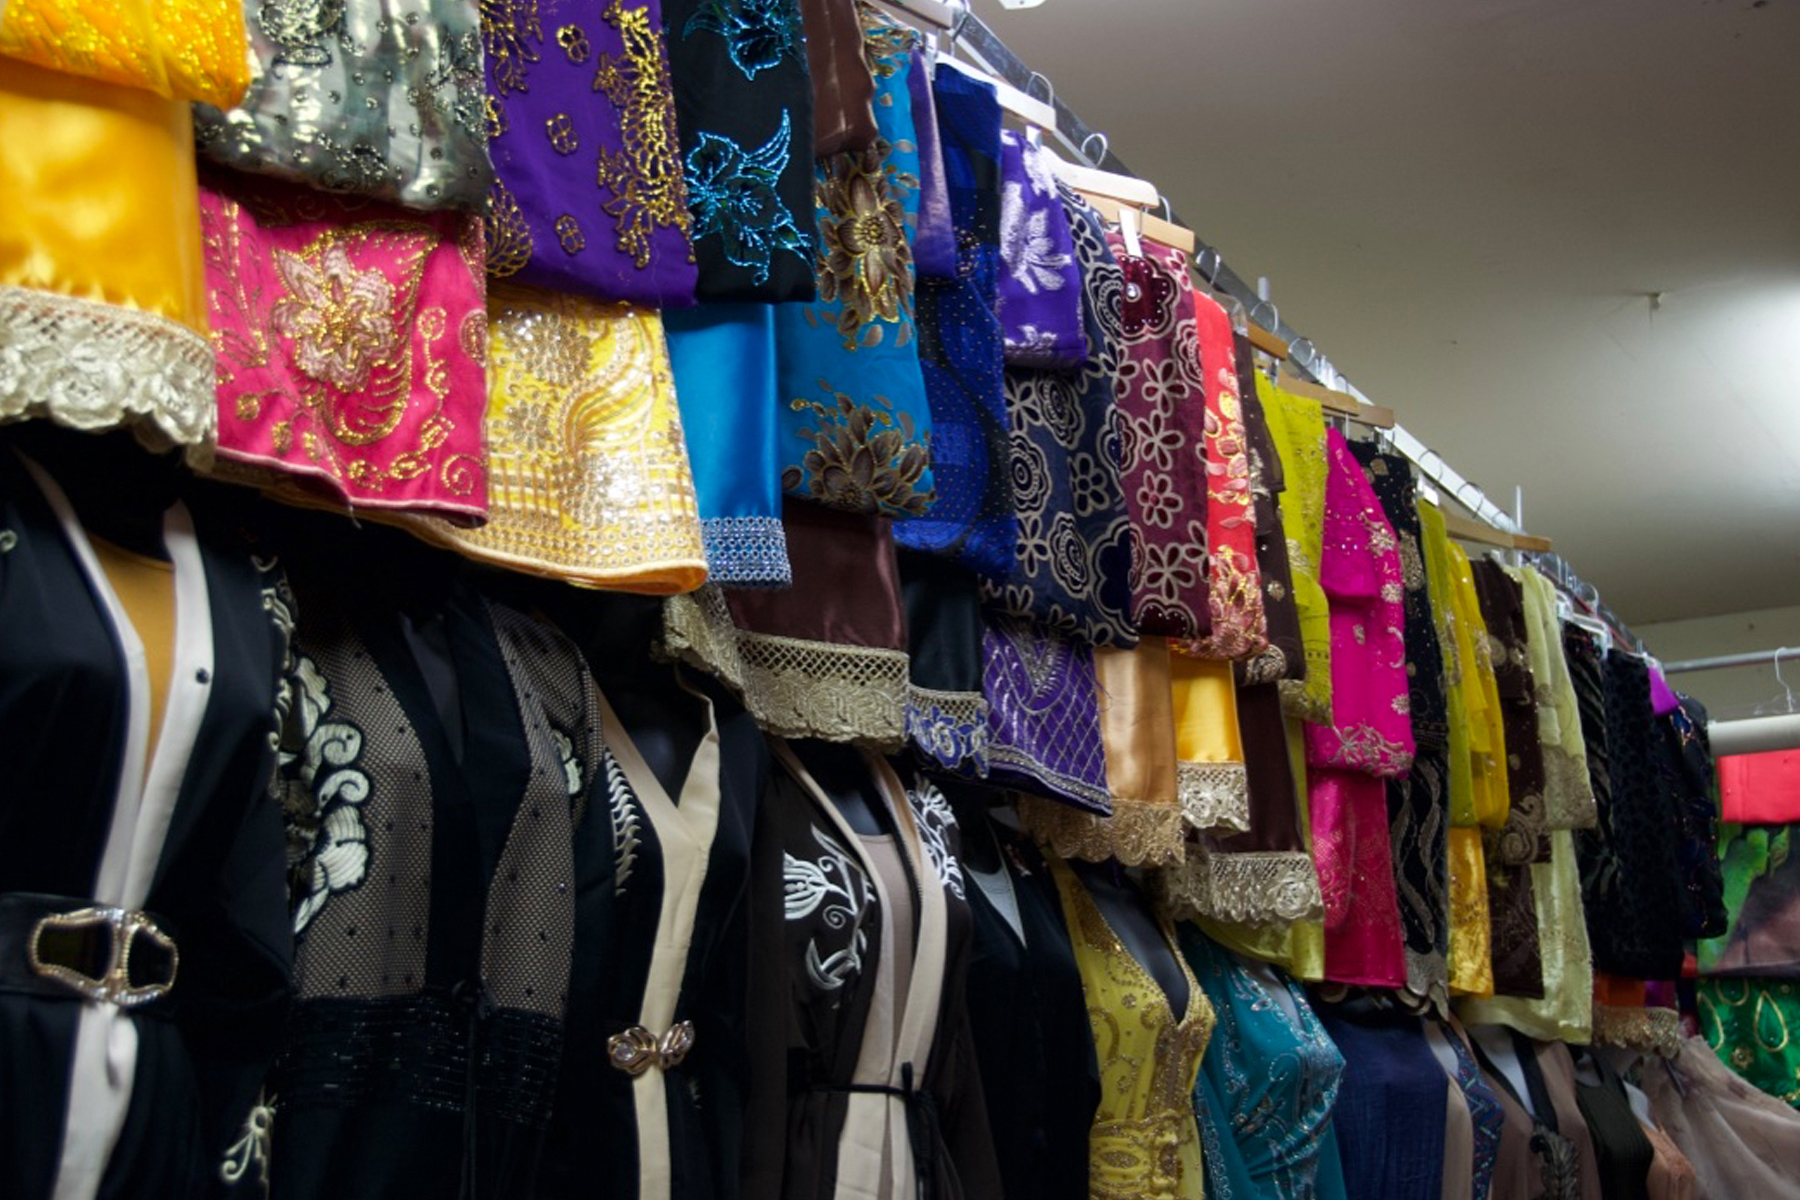 An array of colorful abaya, a style of dress worn by many Muslim women, line one wall of this market stall